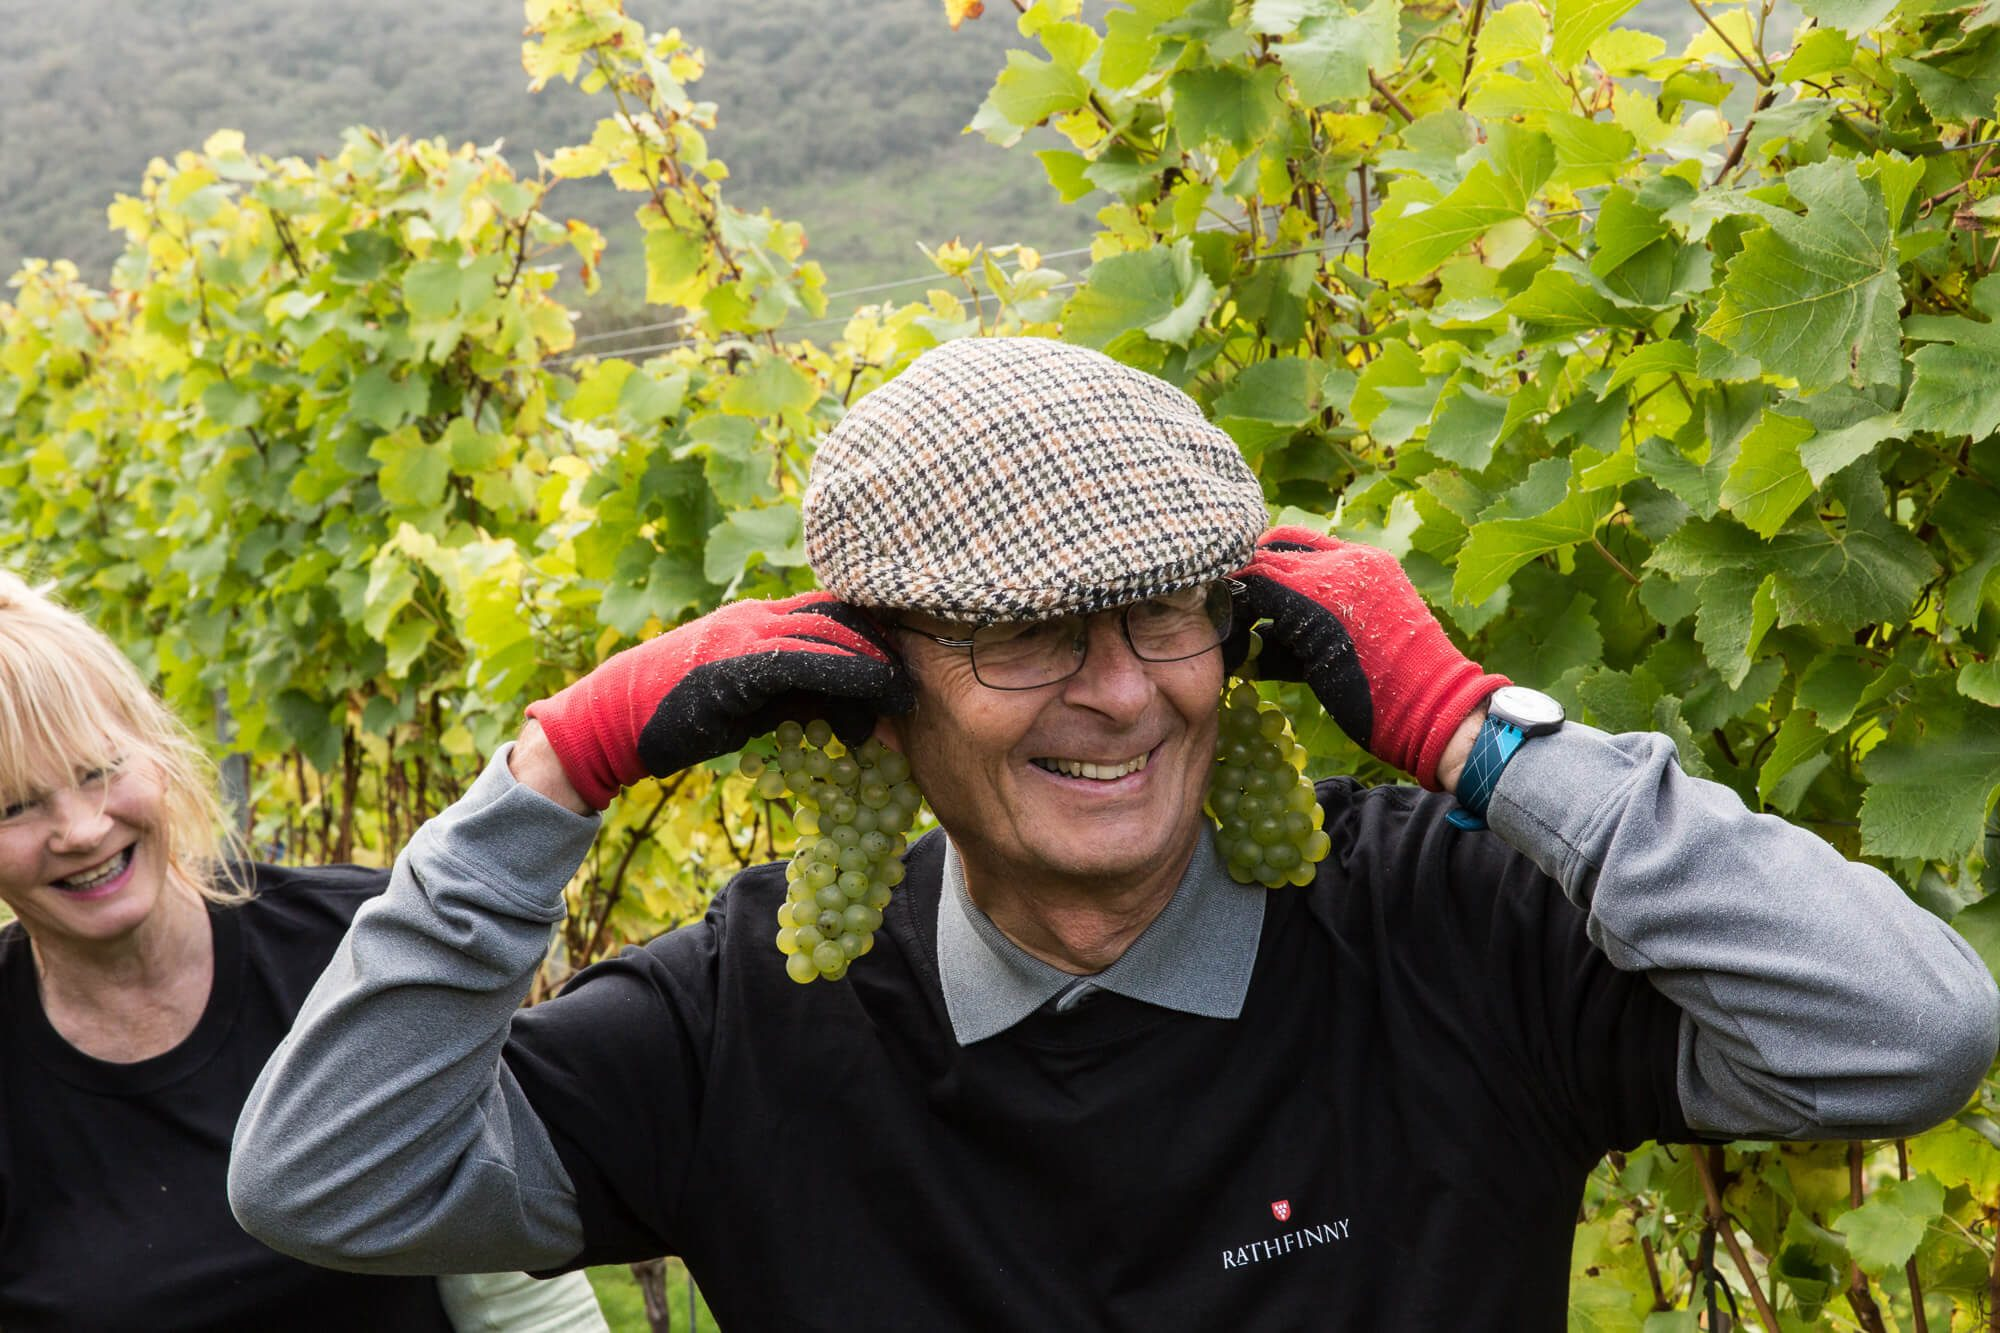 Man with Grapes for Ears